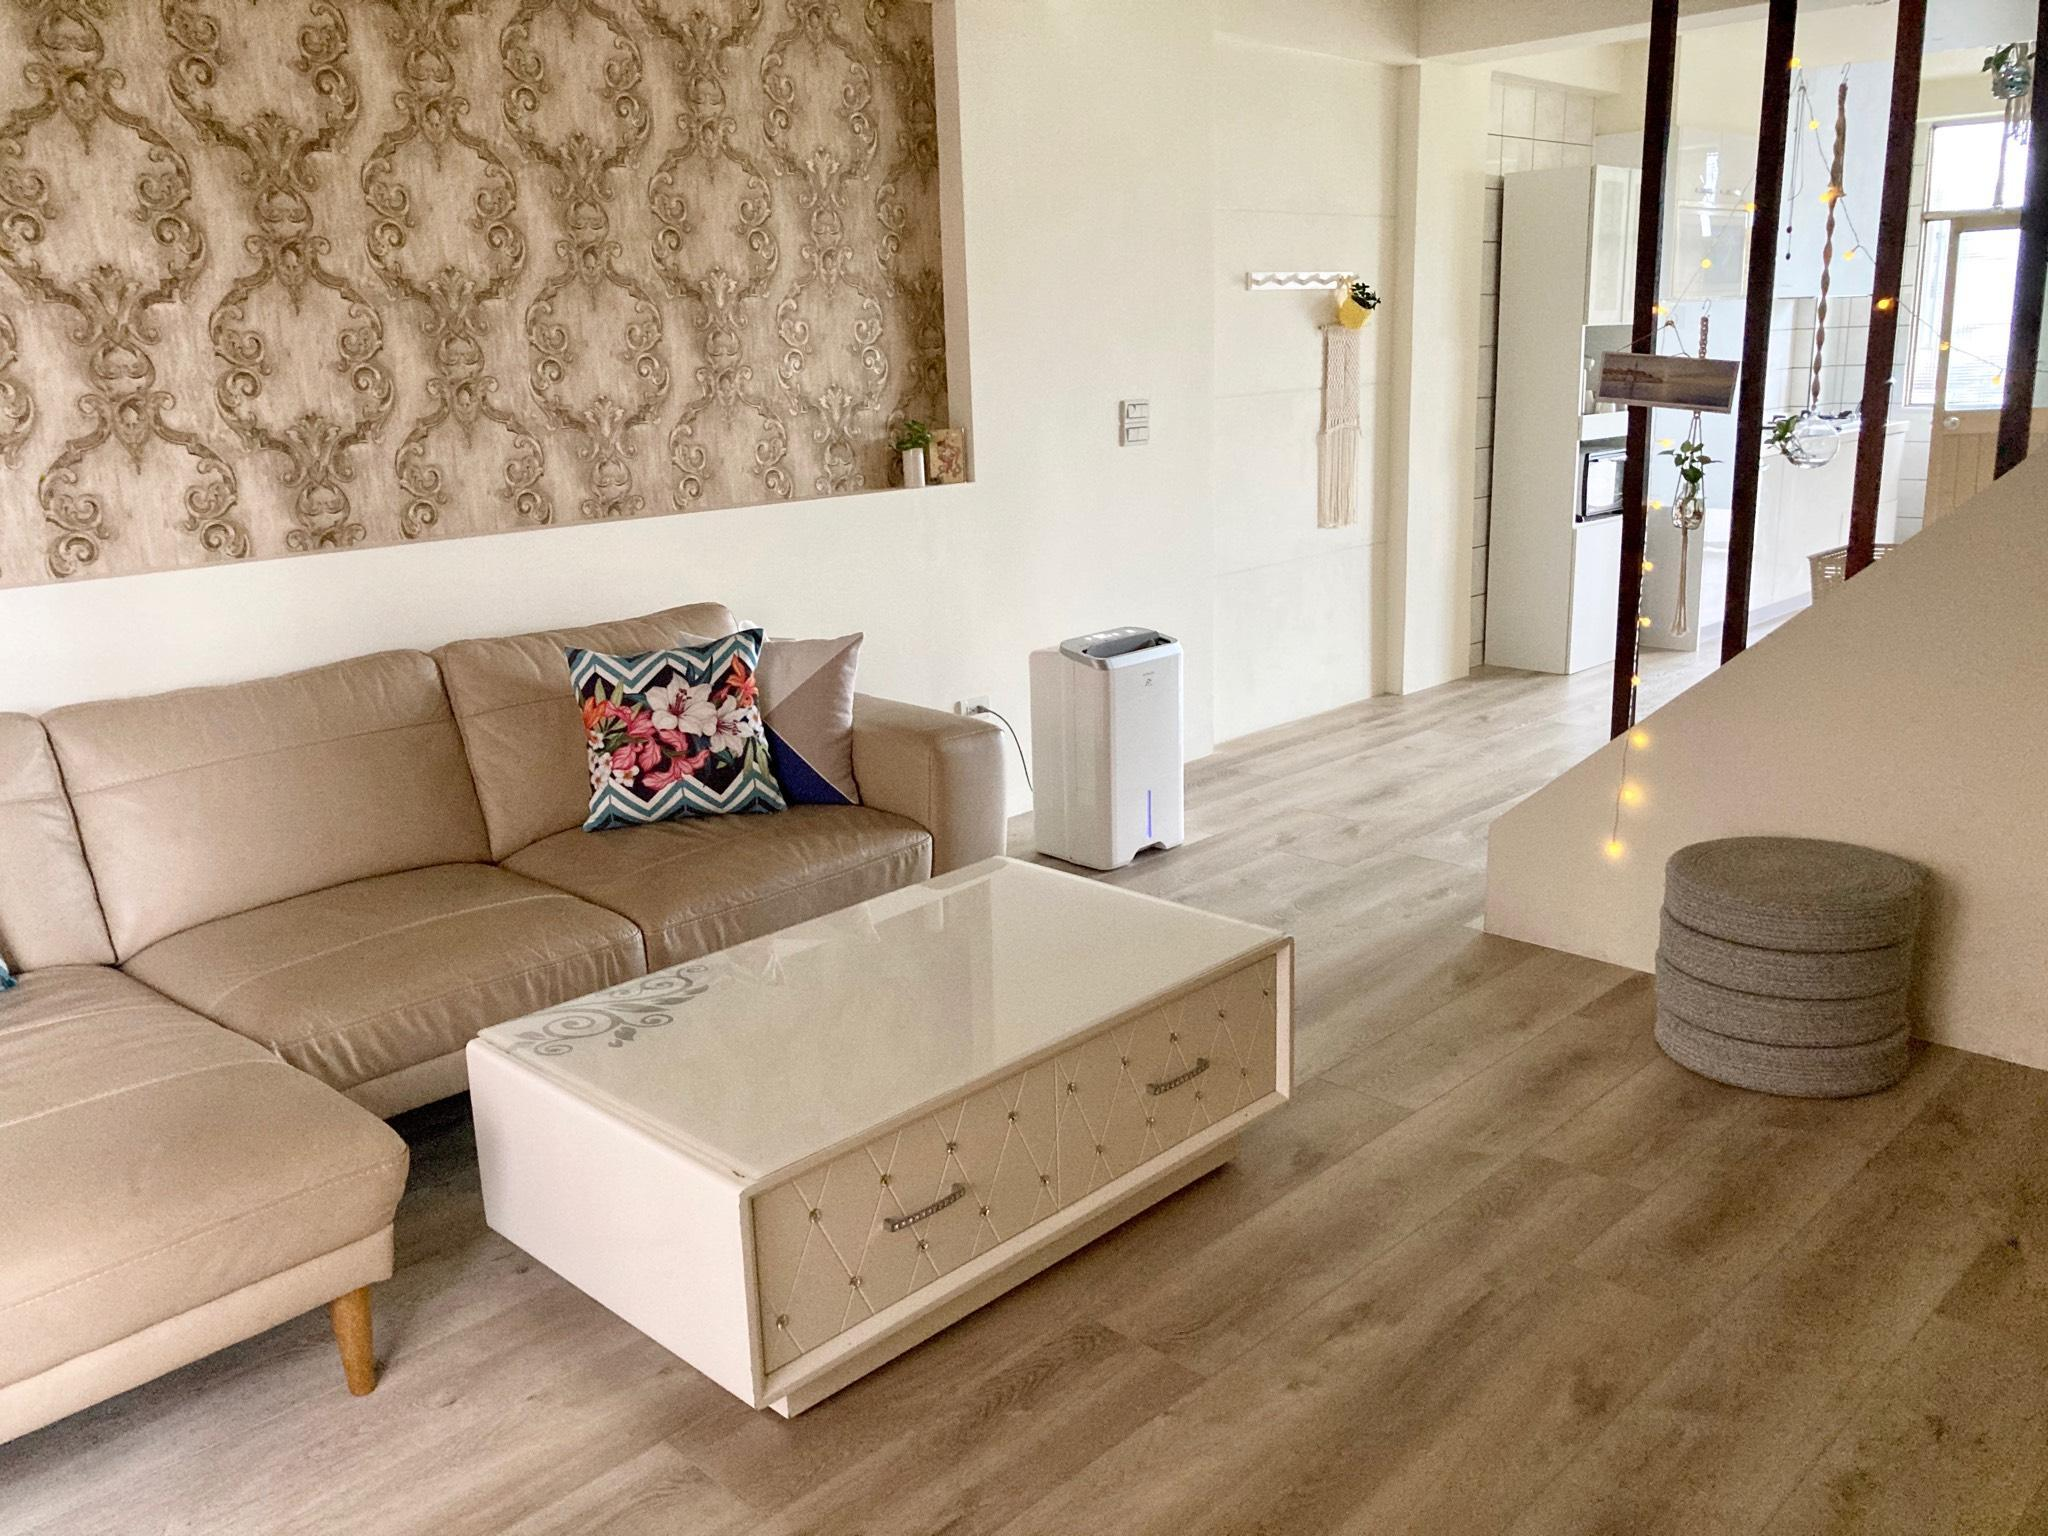 The apartment of Yilan living style for 4-6 peo